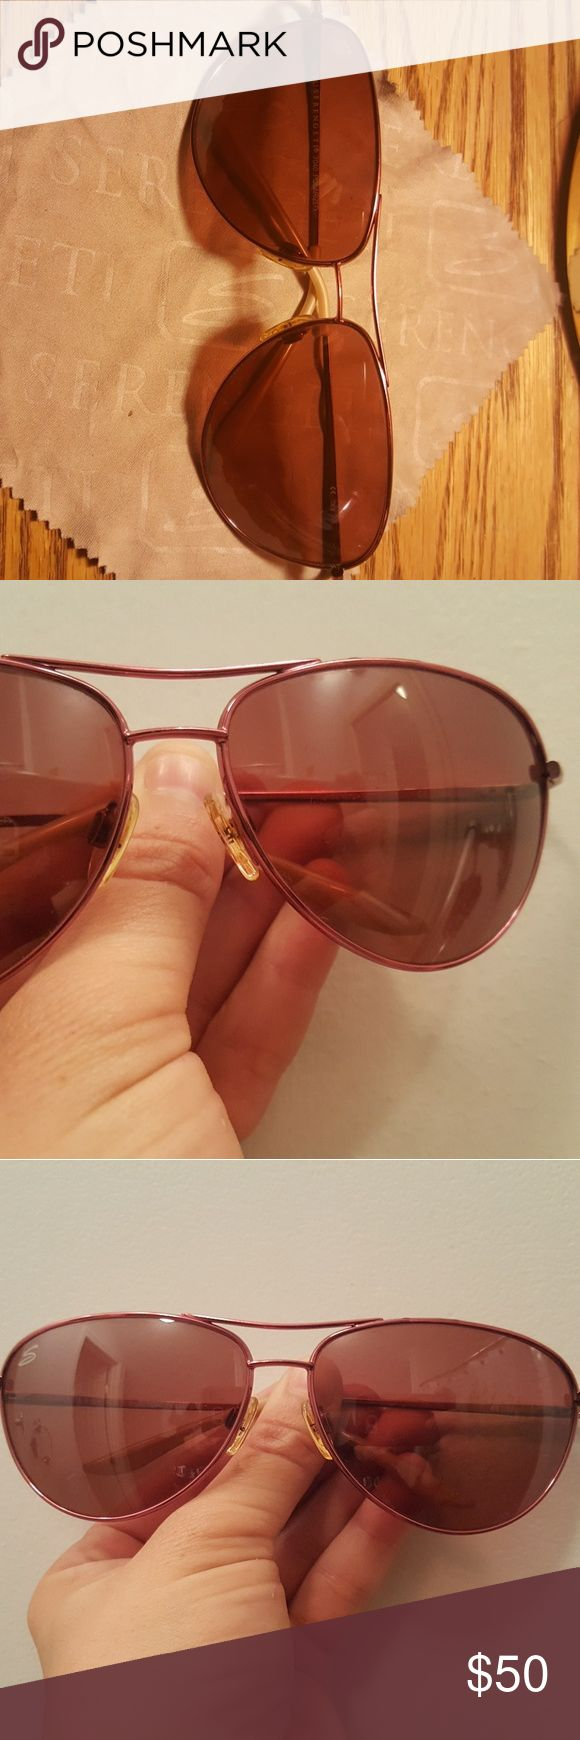 Pink Aviator Sunglasses Custom All pink aviator style Serengeti sunglasses. Worn once. Comes with cleaning cloth as well. Serengeti Accessories Sunglasses